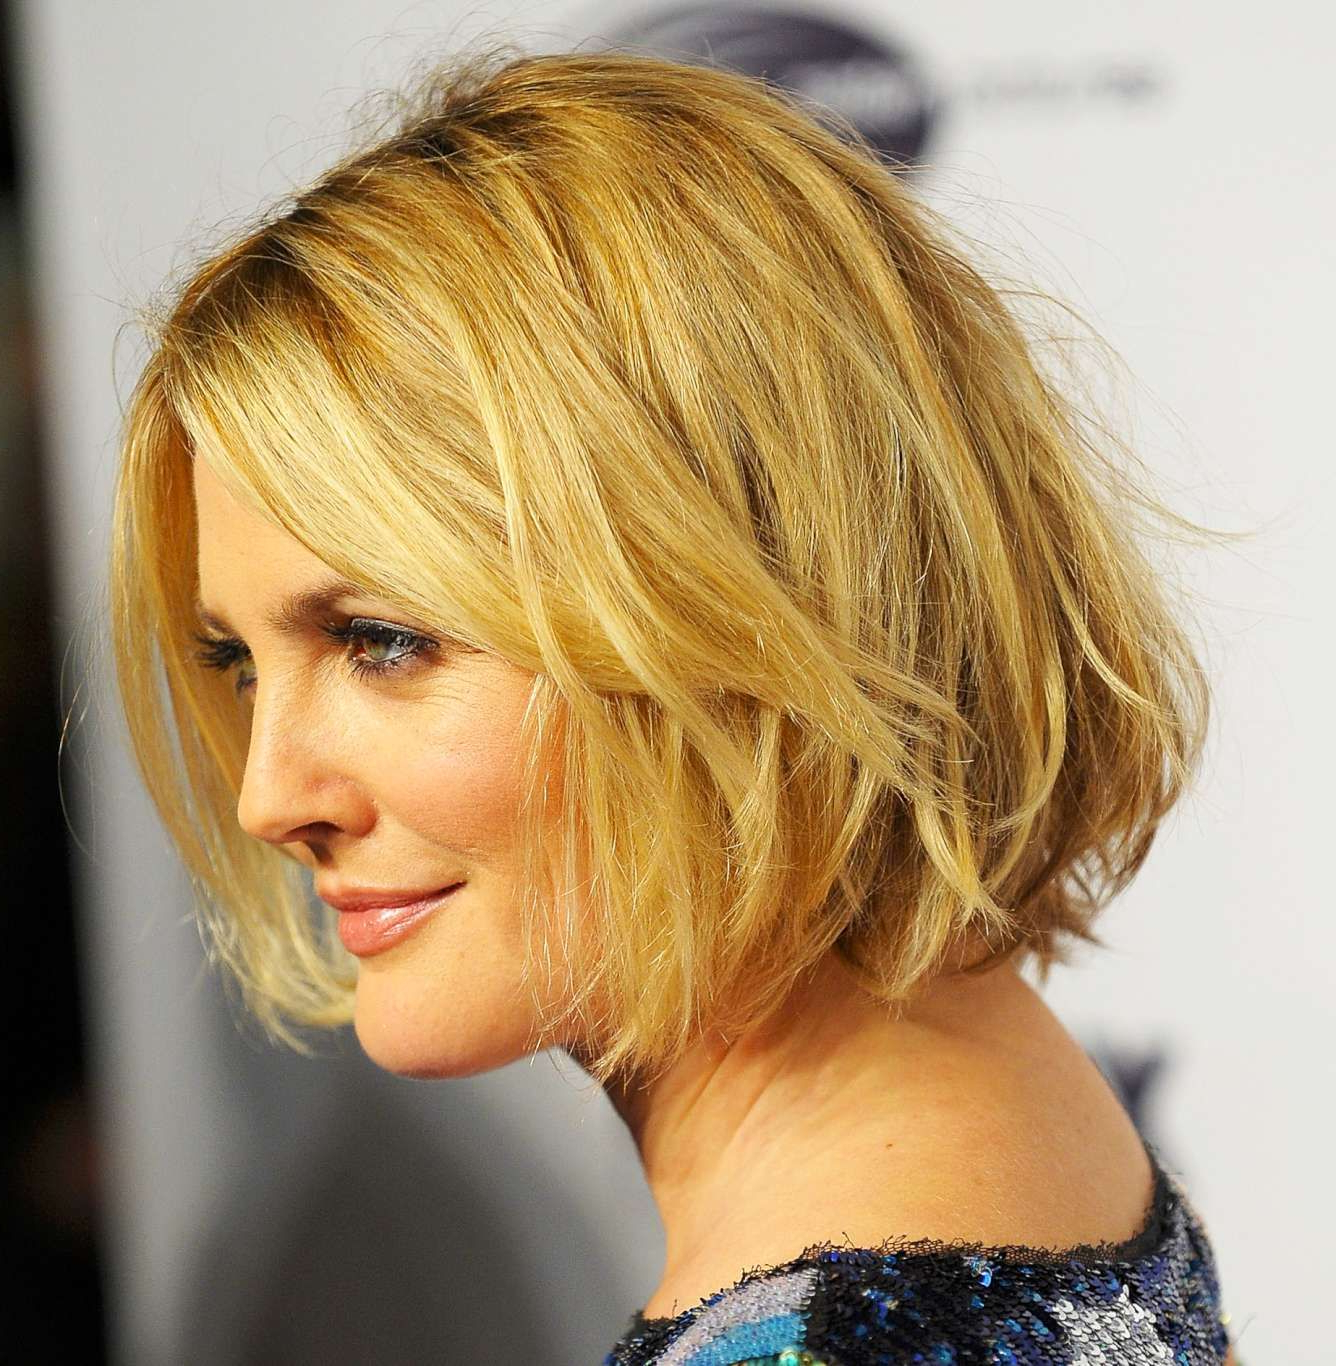 Long Bob Hairstyles 2014 – Medium Intended For Most Current 2014 Medium Hairstyles (View 13 of 20)